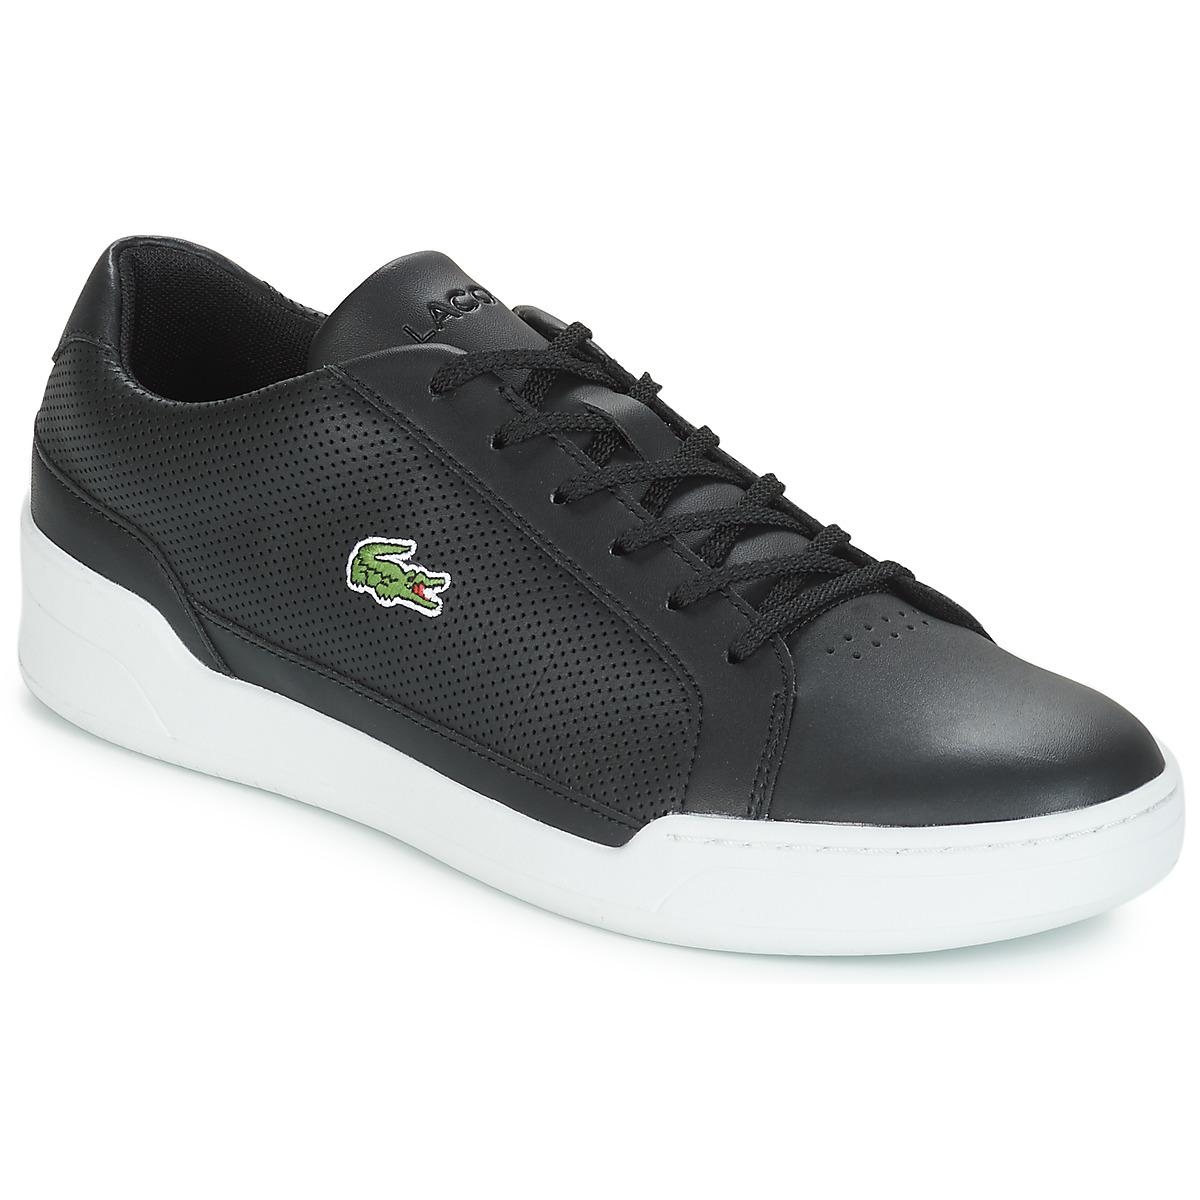 9eb5f5026 Lacoste Challenge 119 2 Shoes (trainers) in Black for Men - Lyst